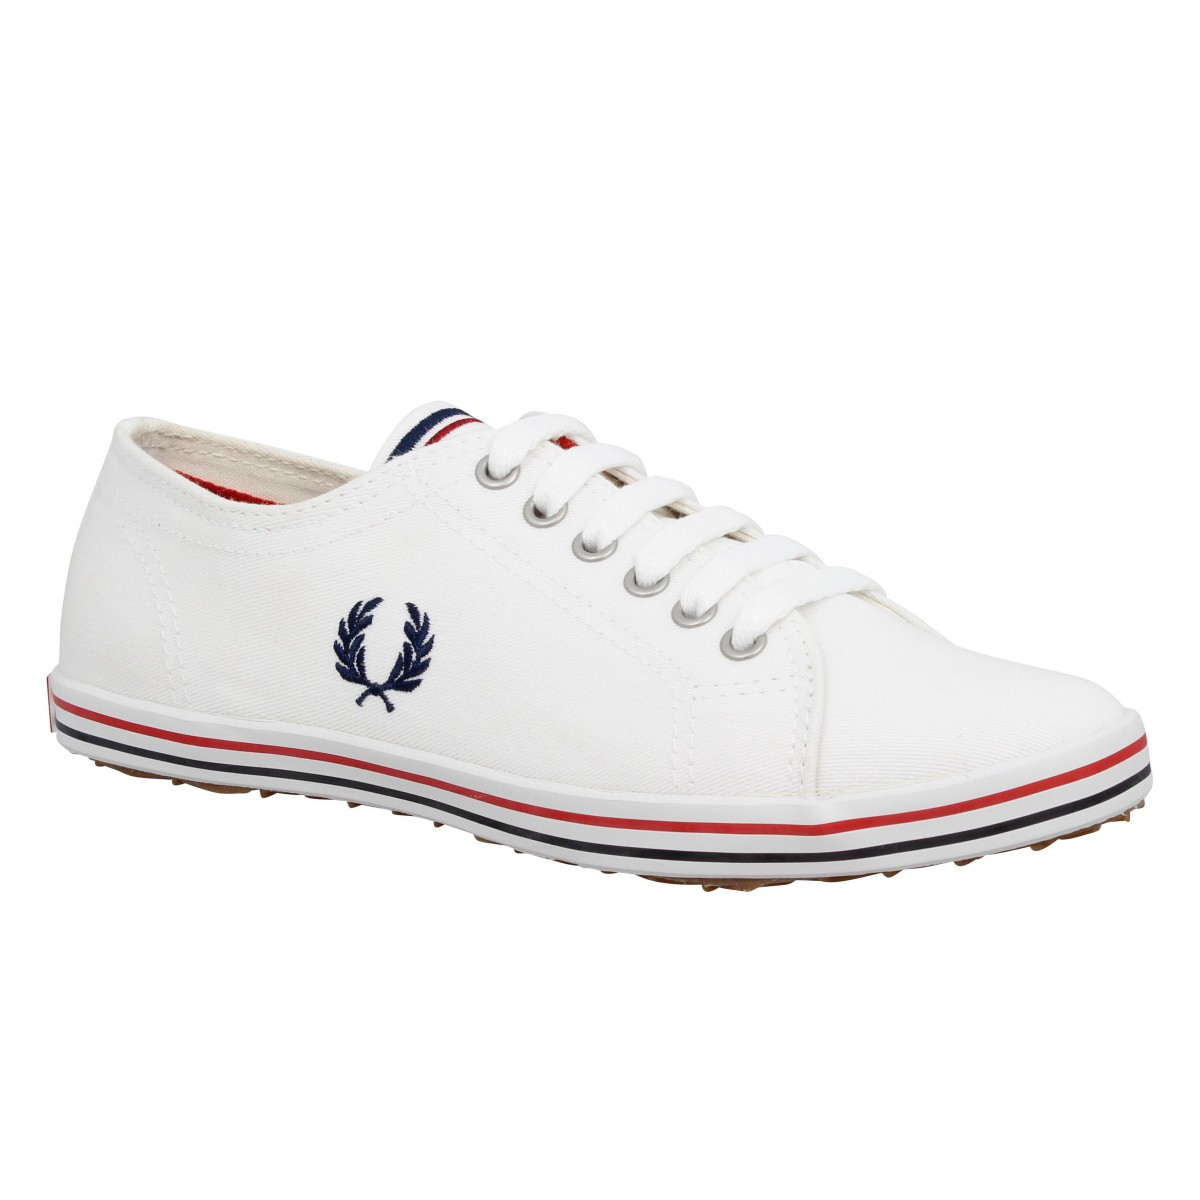 Baskets FRED PERRY Kingston toile Femme Blanc + Marine